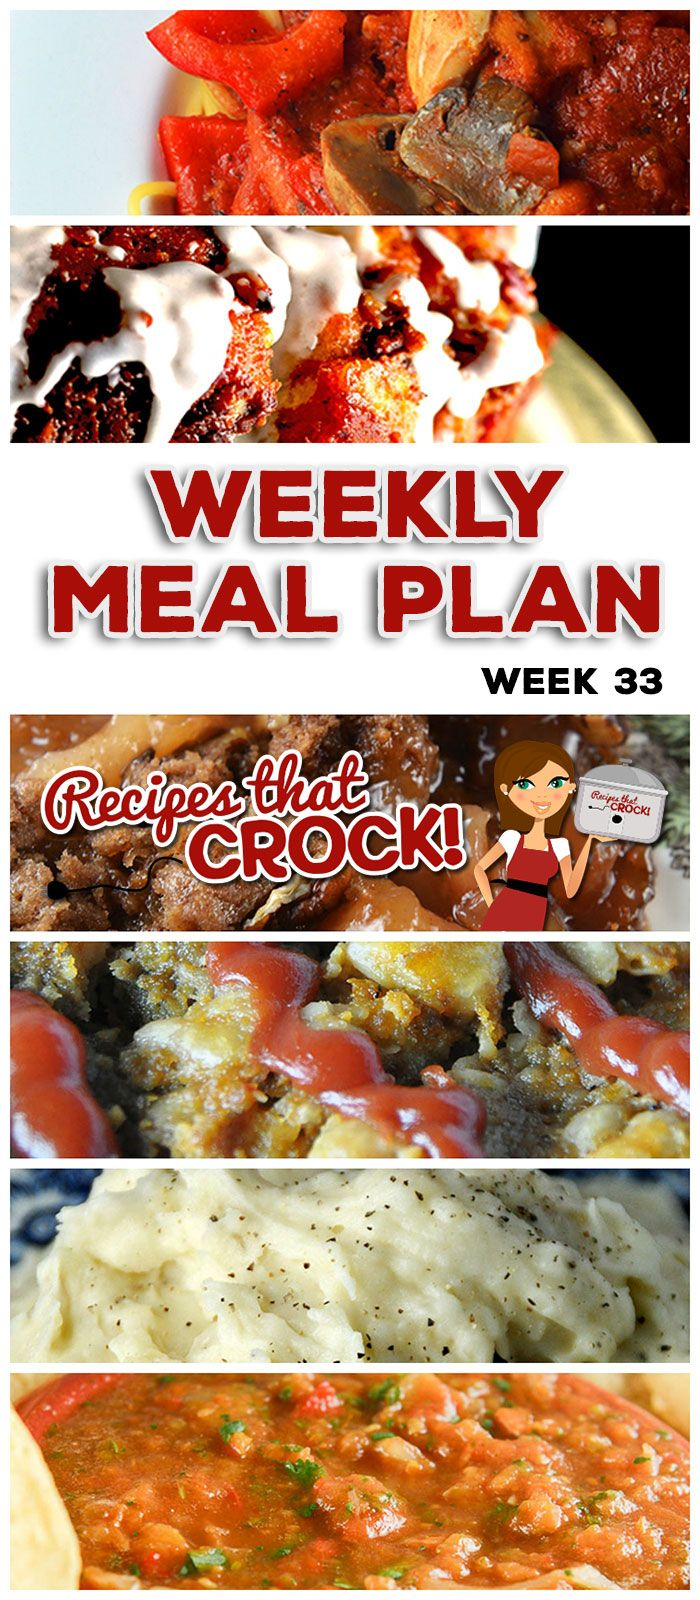 This week's weekly menu features Crock Pot Chicken Alfredo, Crock Pot Old Fashioned Meatloaf, Crock Pot No-Boil Mashed Potatoes, Crock Pot Sausage Corn Potato Chowder, Crock Pot Rustic Italian Chicken, Crock Pot Pork Carnitas, Crock Pot Homemade Salsa, Crock Pot Cream Cheese Garlic Fondue, Cinnamon Roll Monkey Bread and Crock Pot Apple Spice Dump Cake.